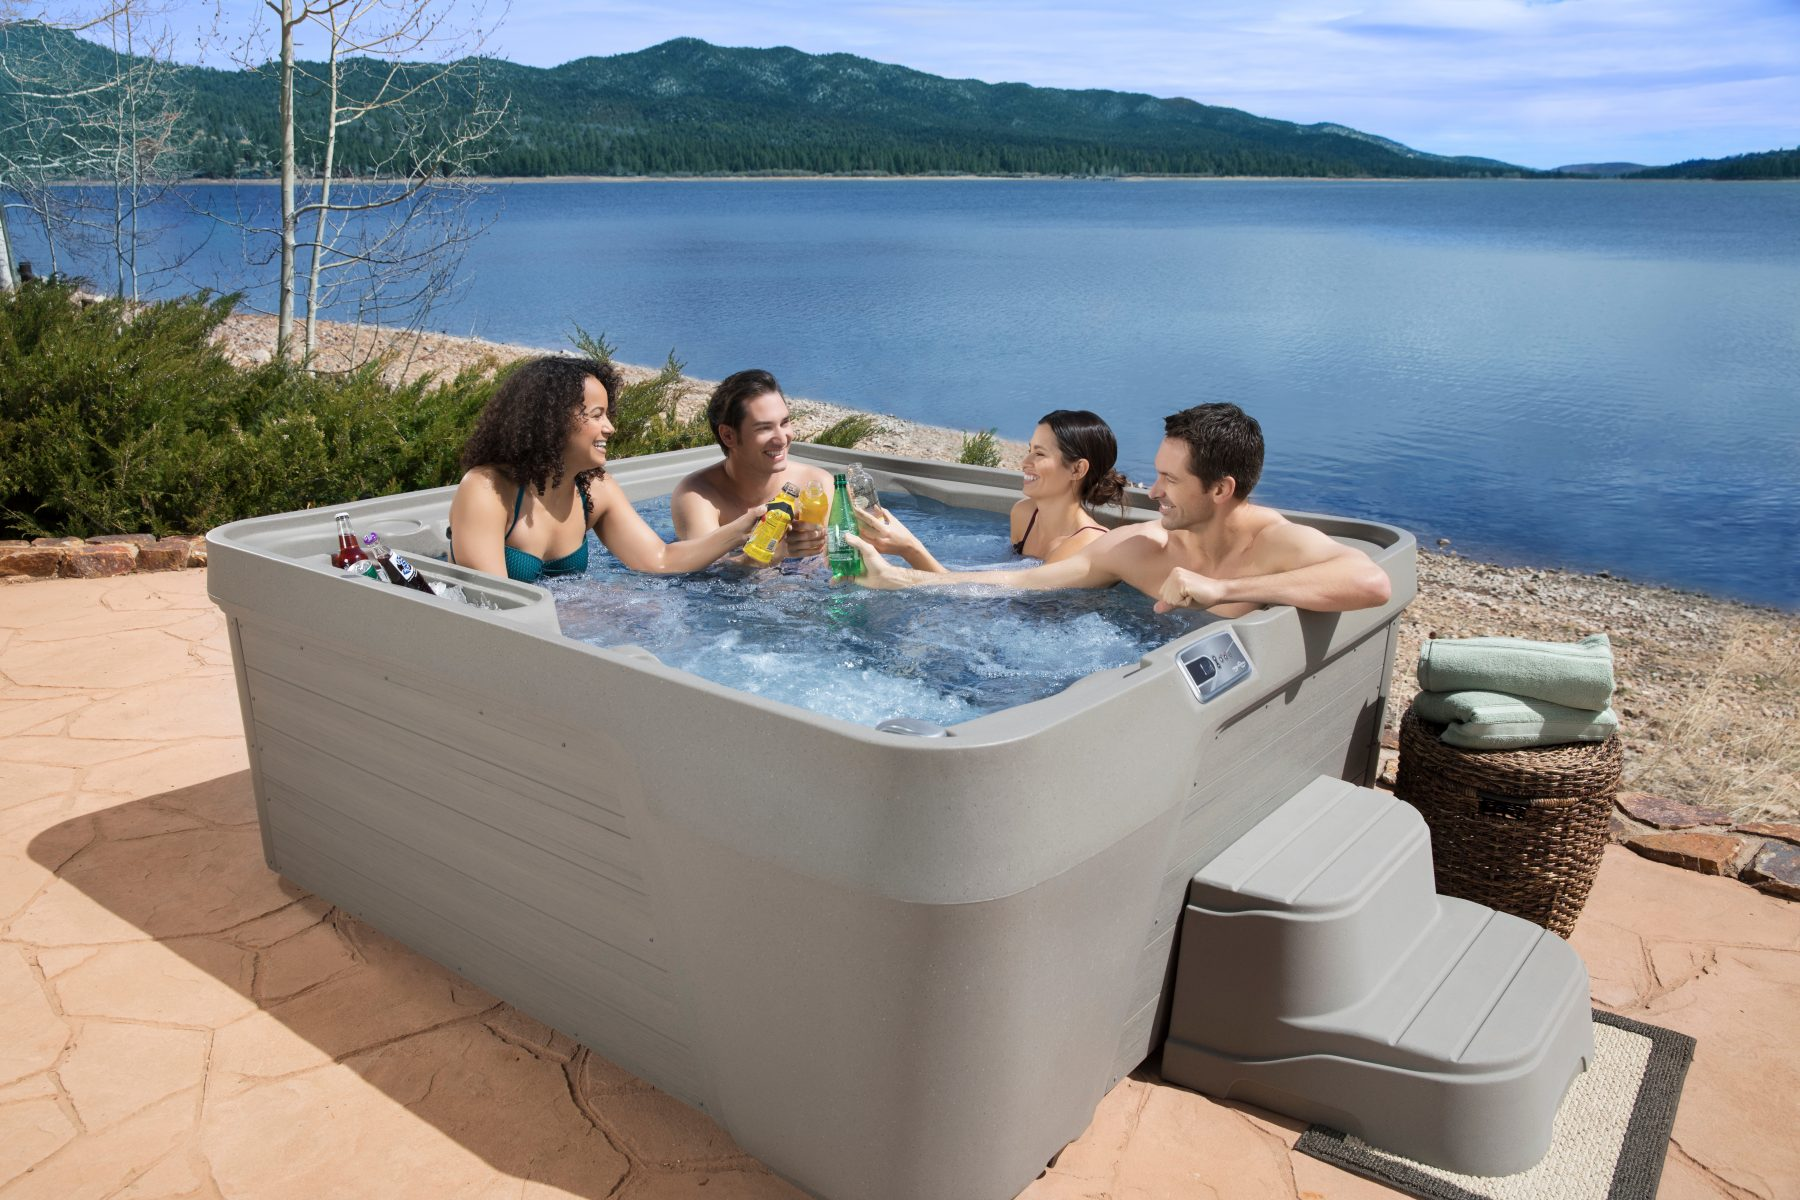 wiring 220v hot tub pros and cons of 110v plug and play hot tubs  cons of 110v plug and play hot tubs